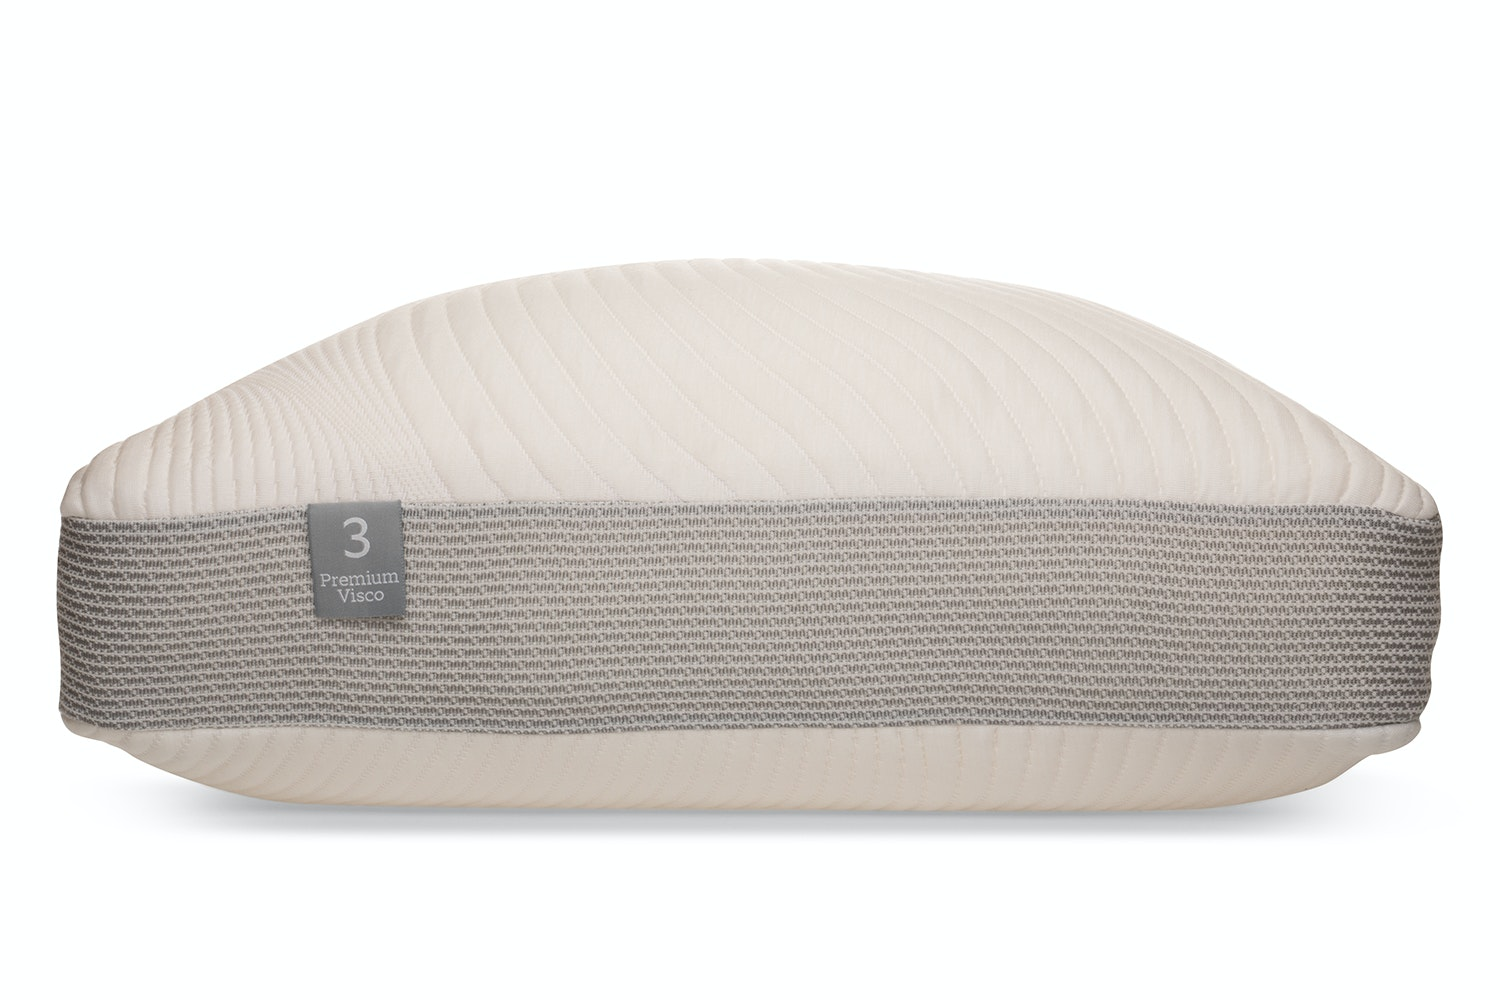 Sleep Studio Pillow | Premium Visco | 3